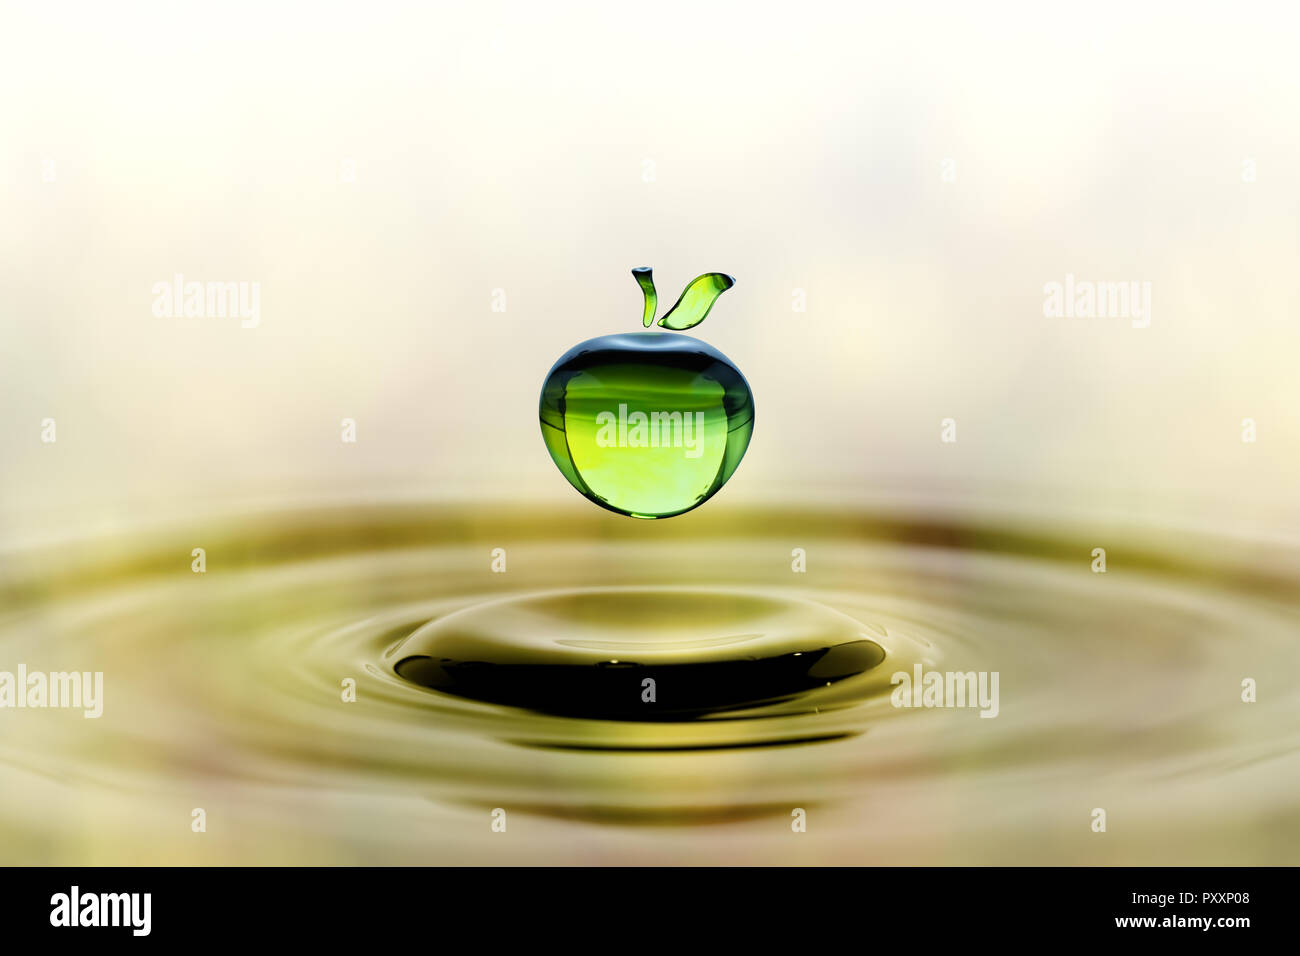 Rain drop in shape of green apple falling on blue water surface. Light brown blurred pattern in background. - Stock Image